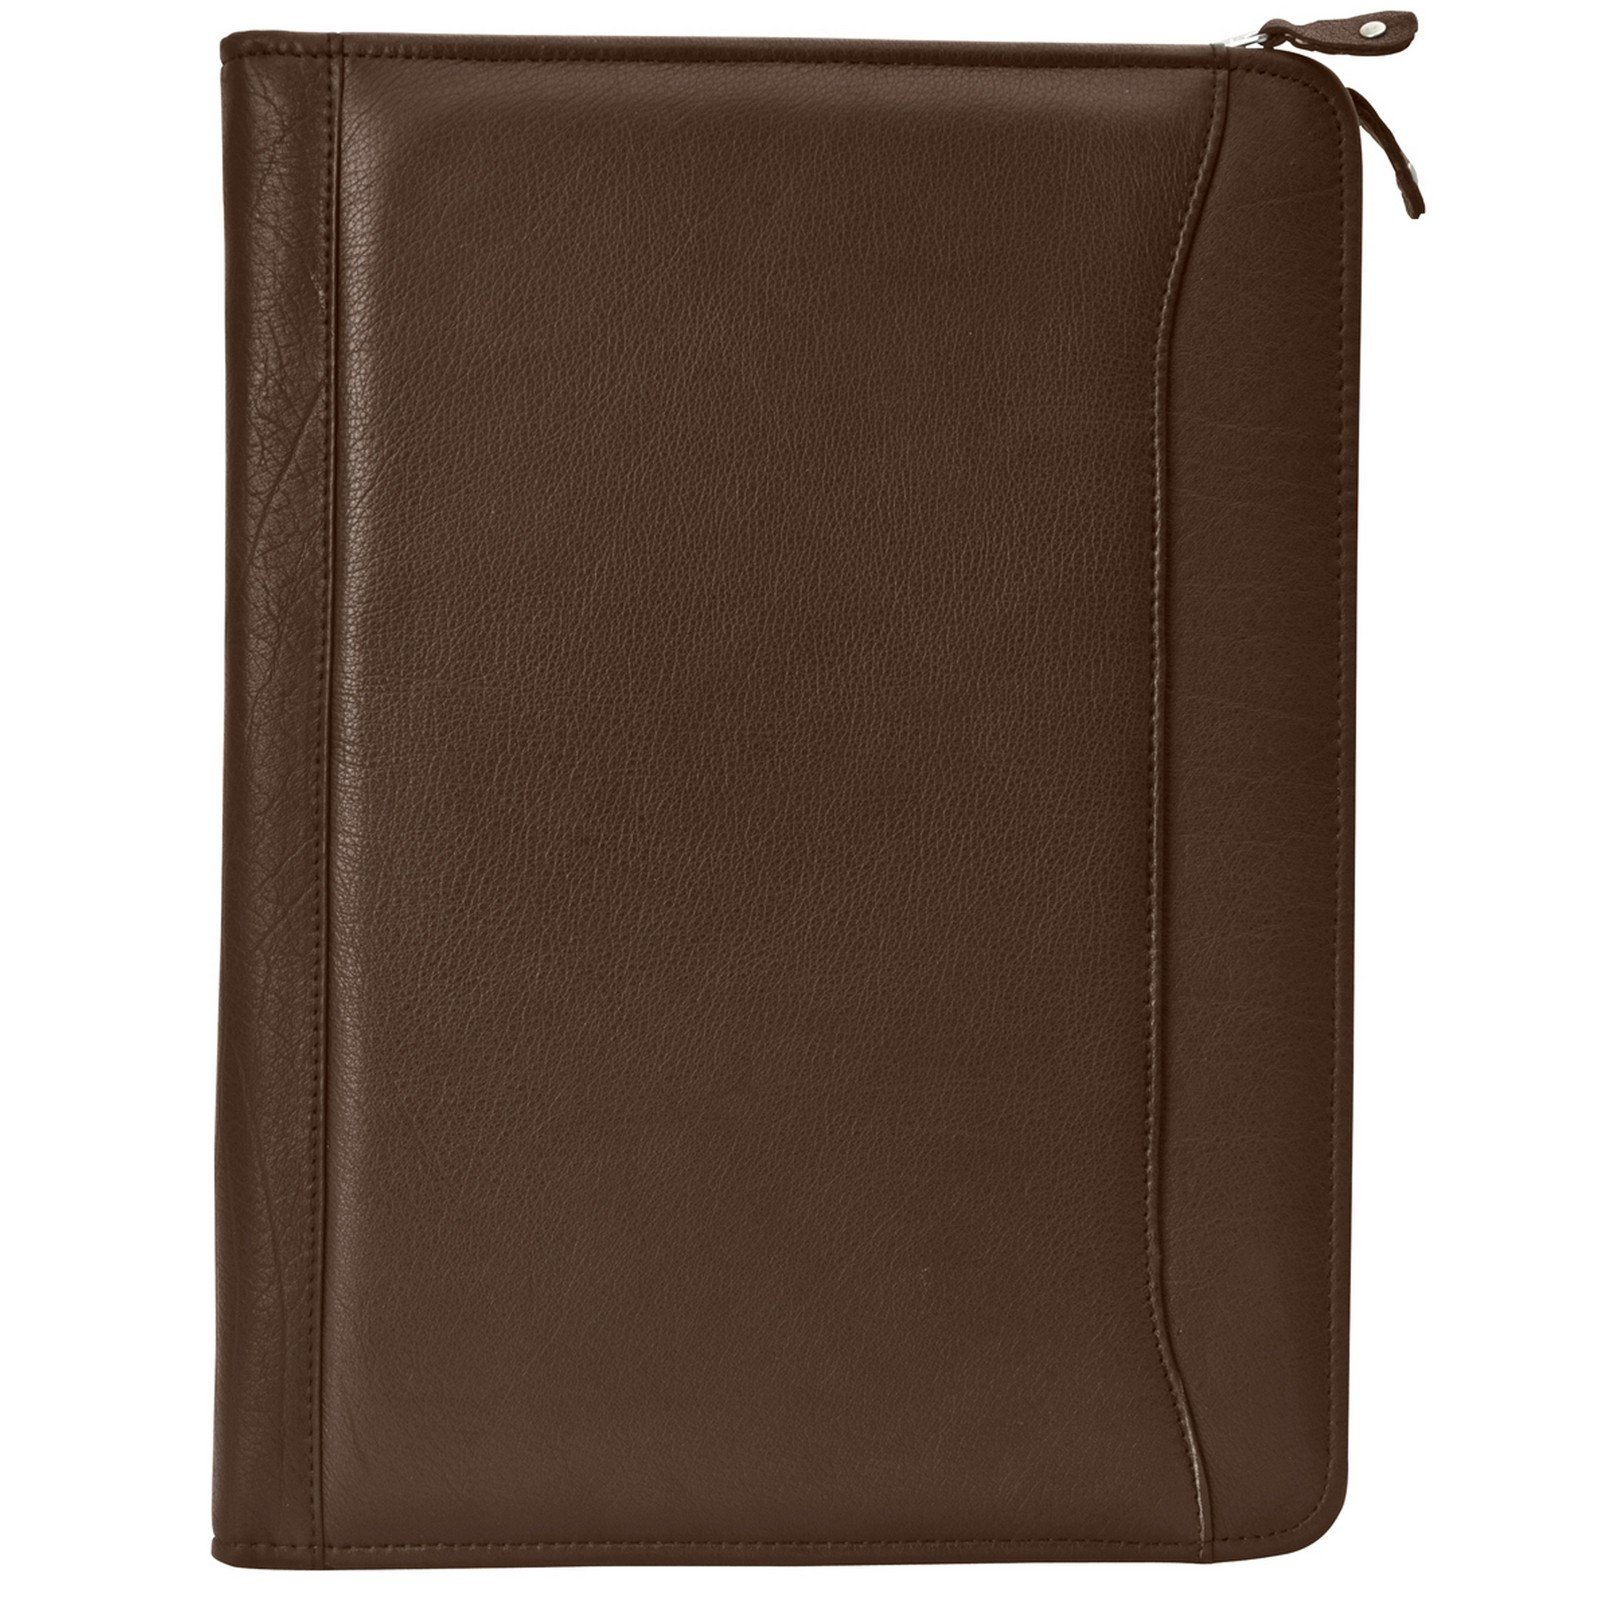 Canyon Outback Leather Goods, Inc. Oregon Canyon Zip-Around Folder-Brown